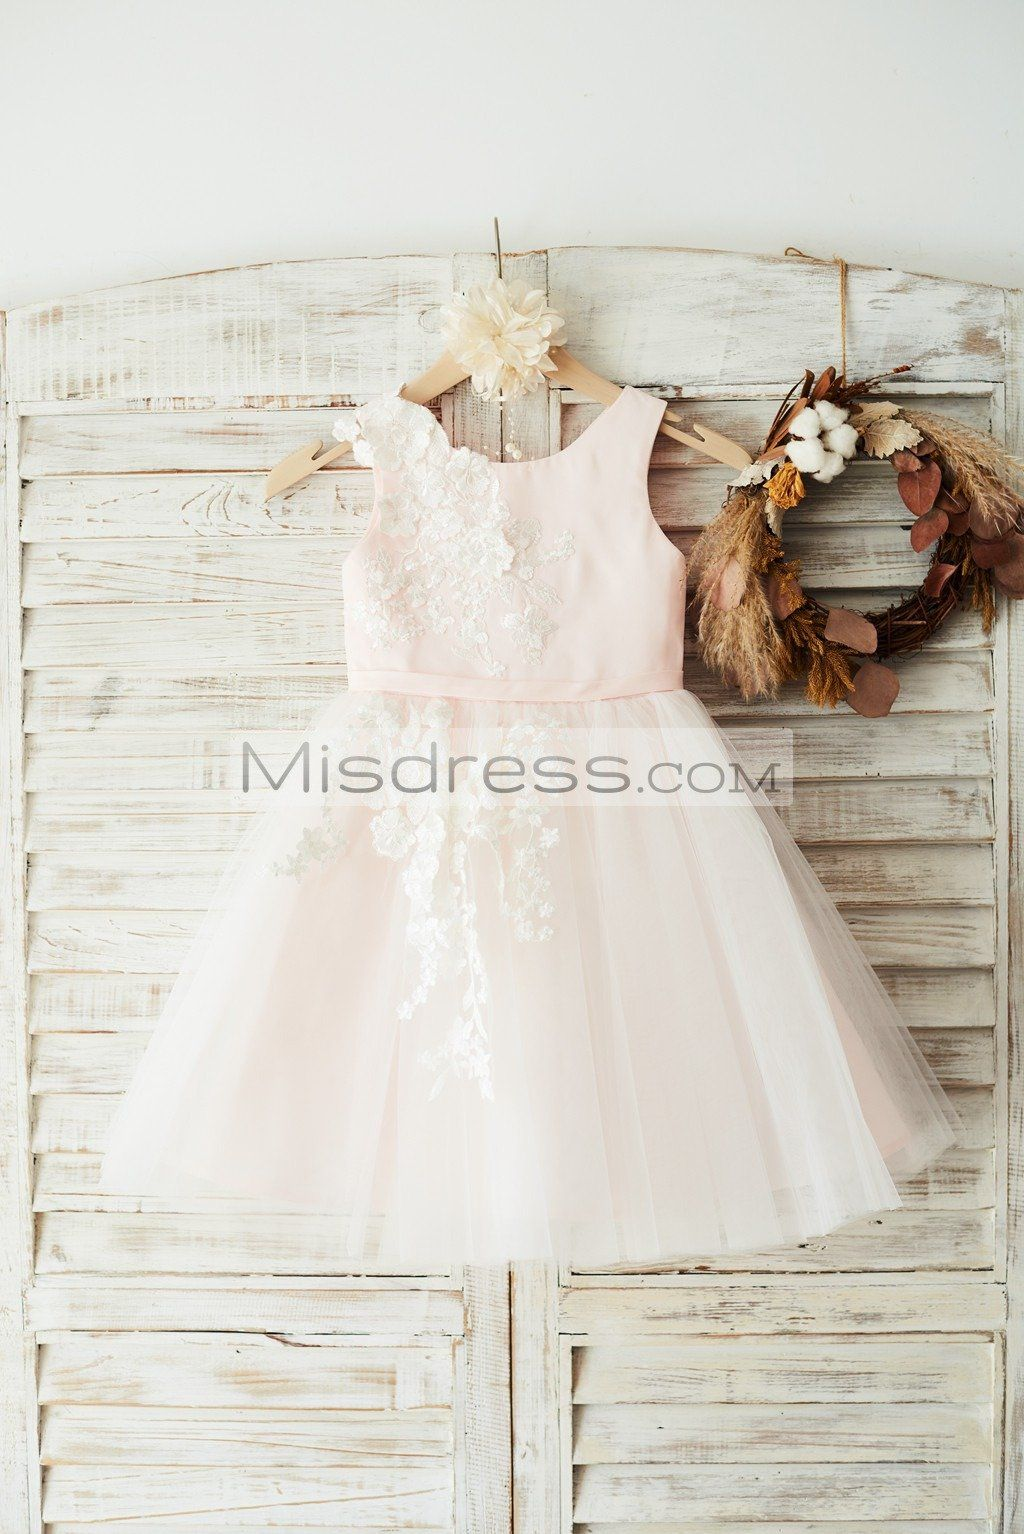 d0756c213e1 Ivory Lace Champagne Tulle Wedding Flower Girl Dress with Beaded Sash